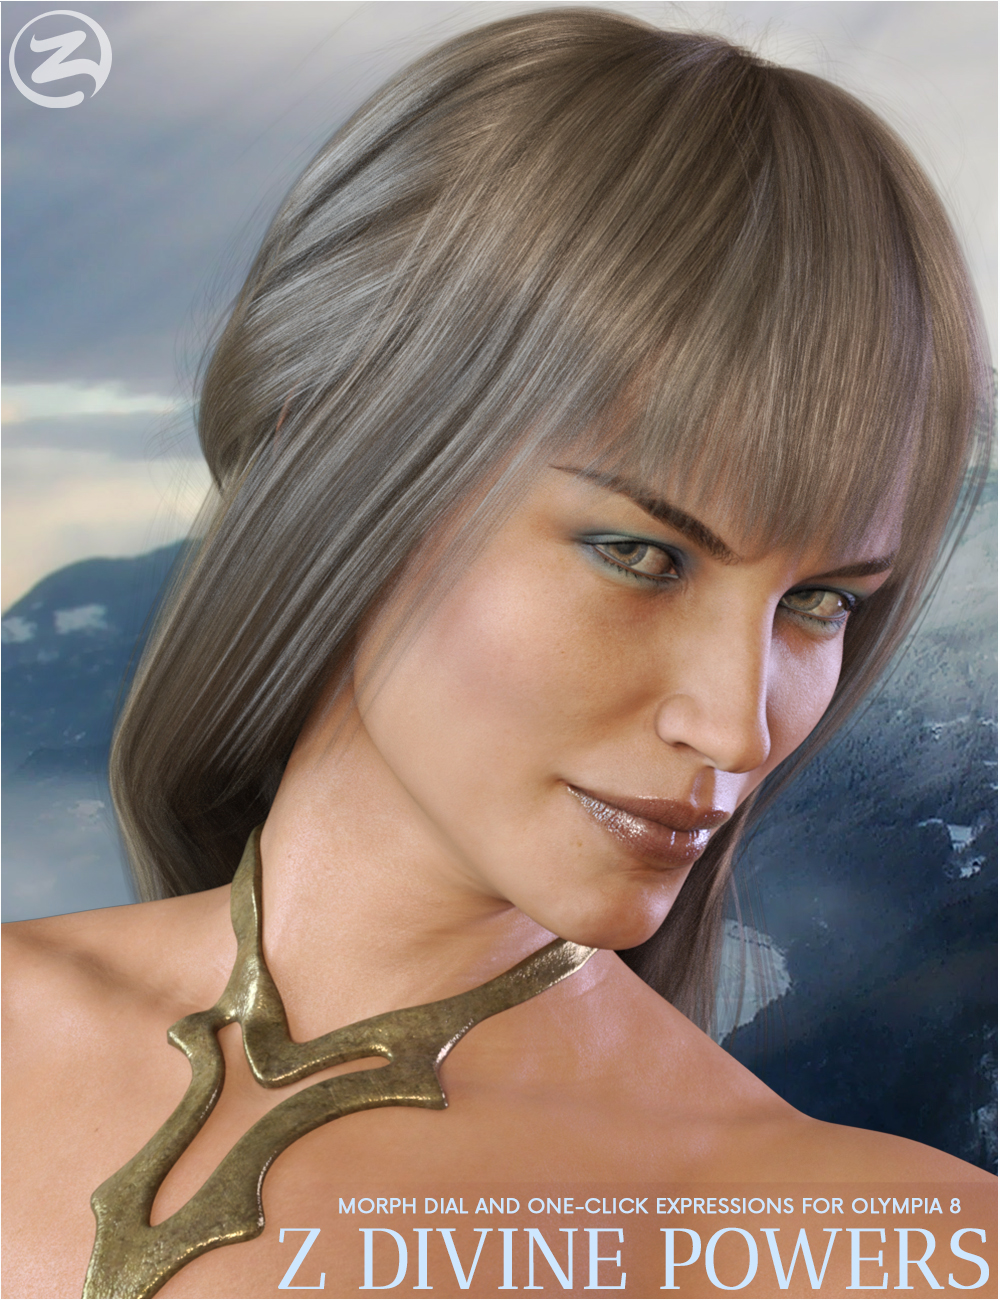 Z Divine Powers - Dialable and One-Click Expressions for Olympia 8 by: Zeddicuss, 3D Models by Daz 3D